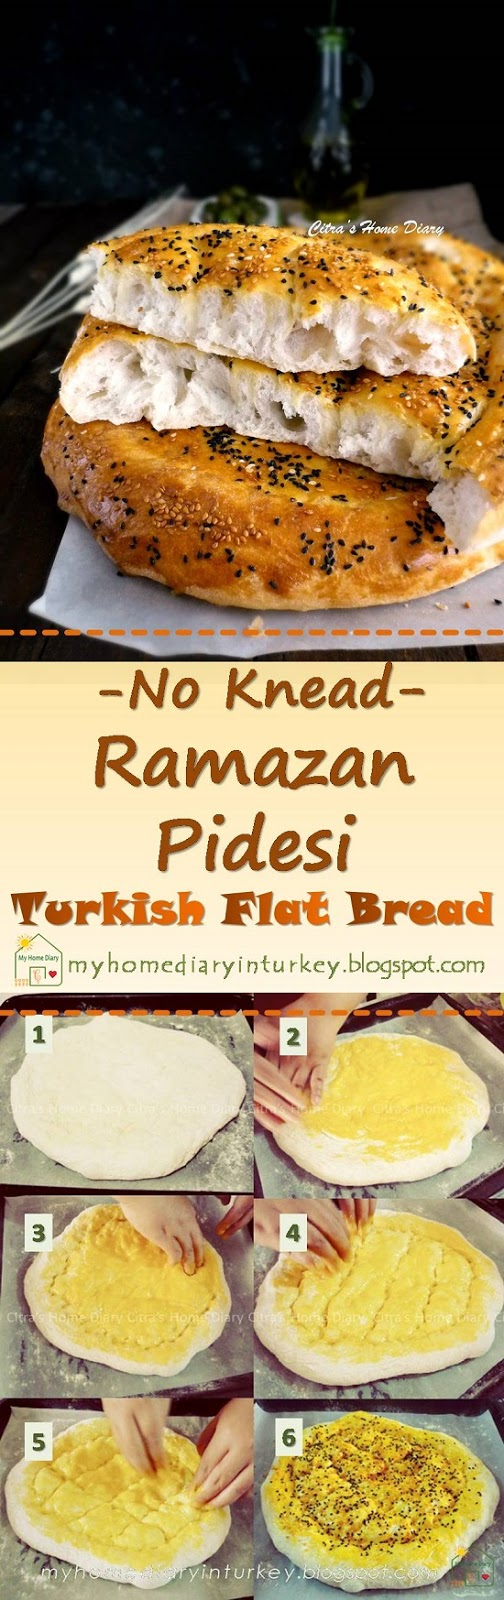 No knead Ramazan Pidesi / Turkish Pide bread (flat bread) with step by step pictures| Çitra's Home Diary